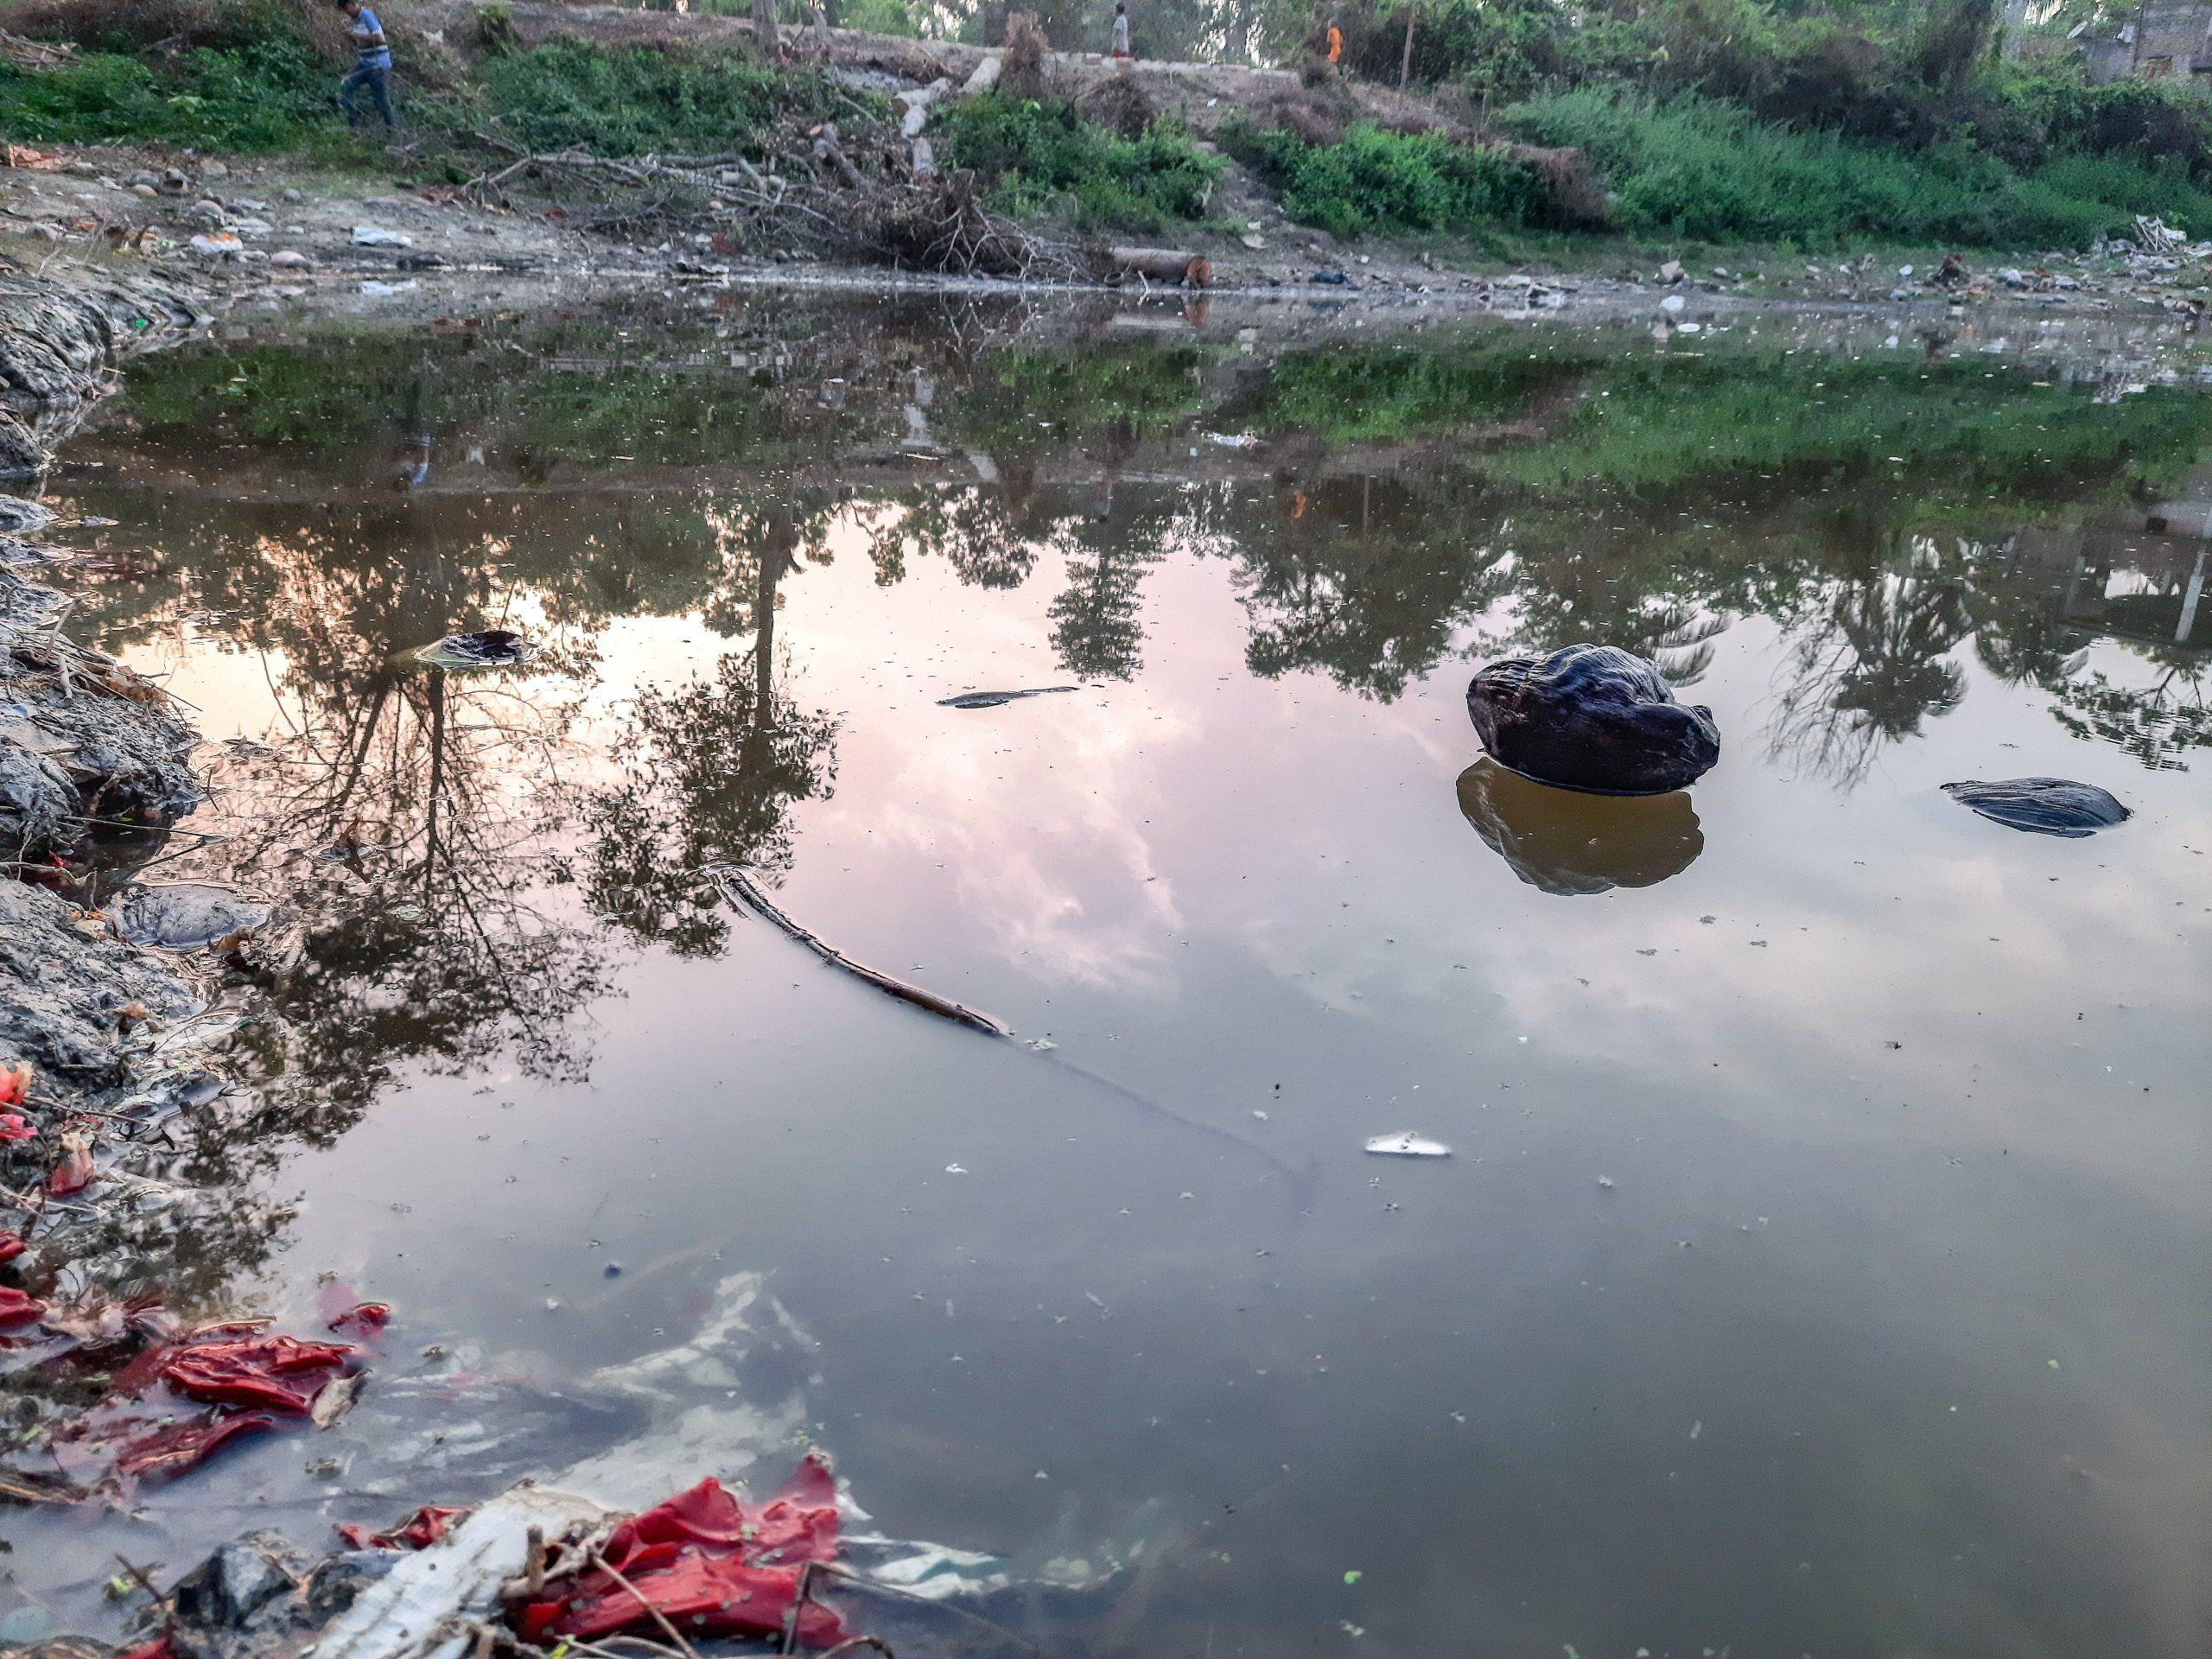 Water pollution in a pond